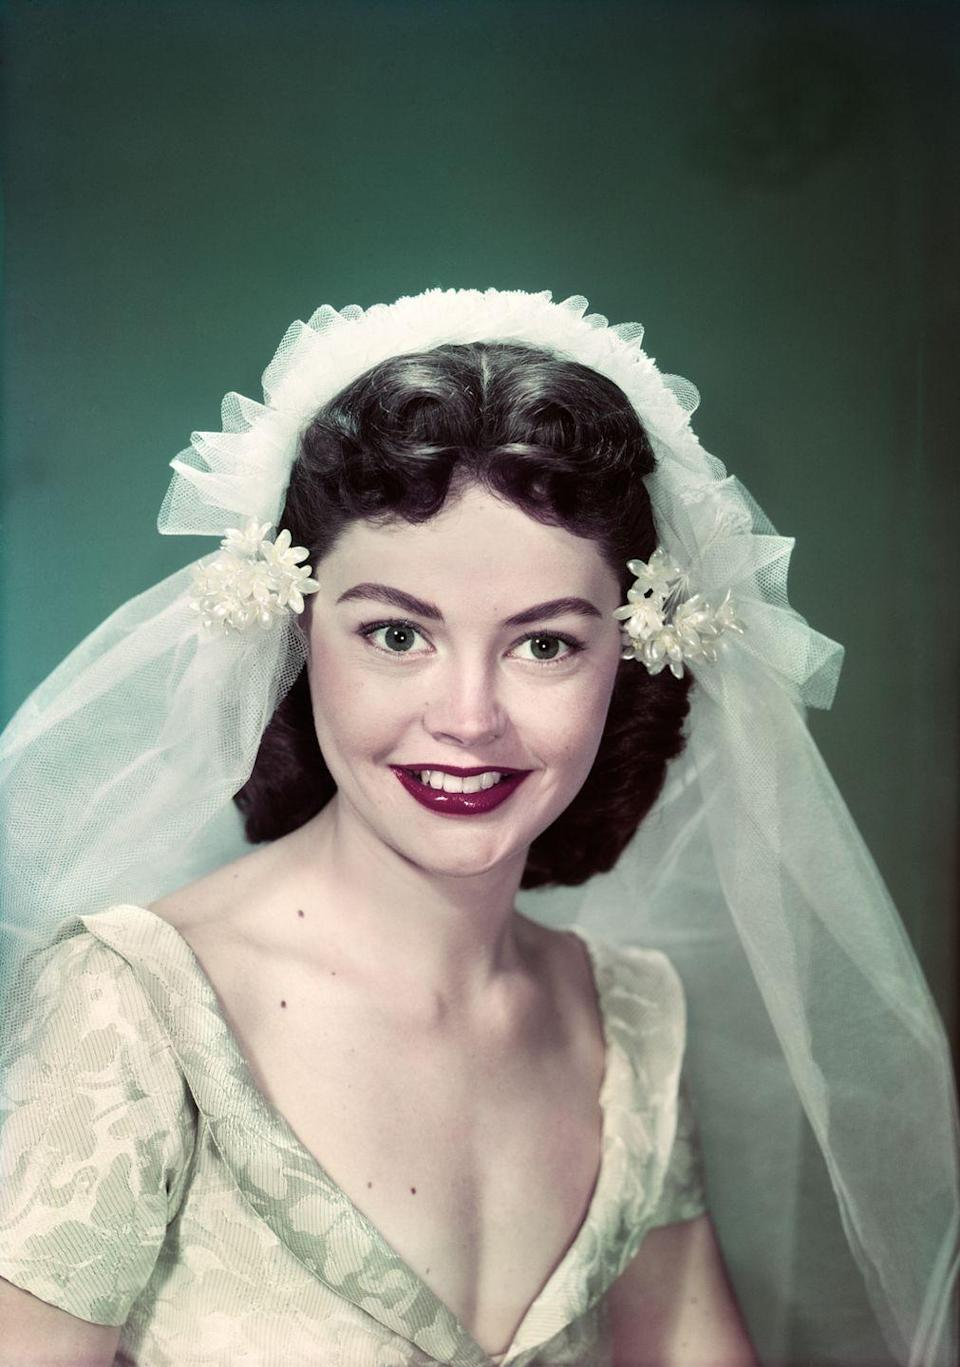 <p>Necklines plunged during 1949, and wedding gowns were no exception. Shoulder-length, curled hair was also in style, and veils became shorter and simpler. </p>